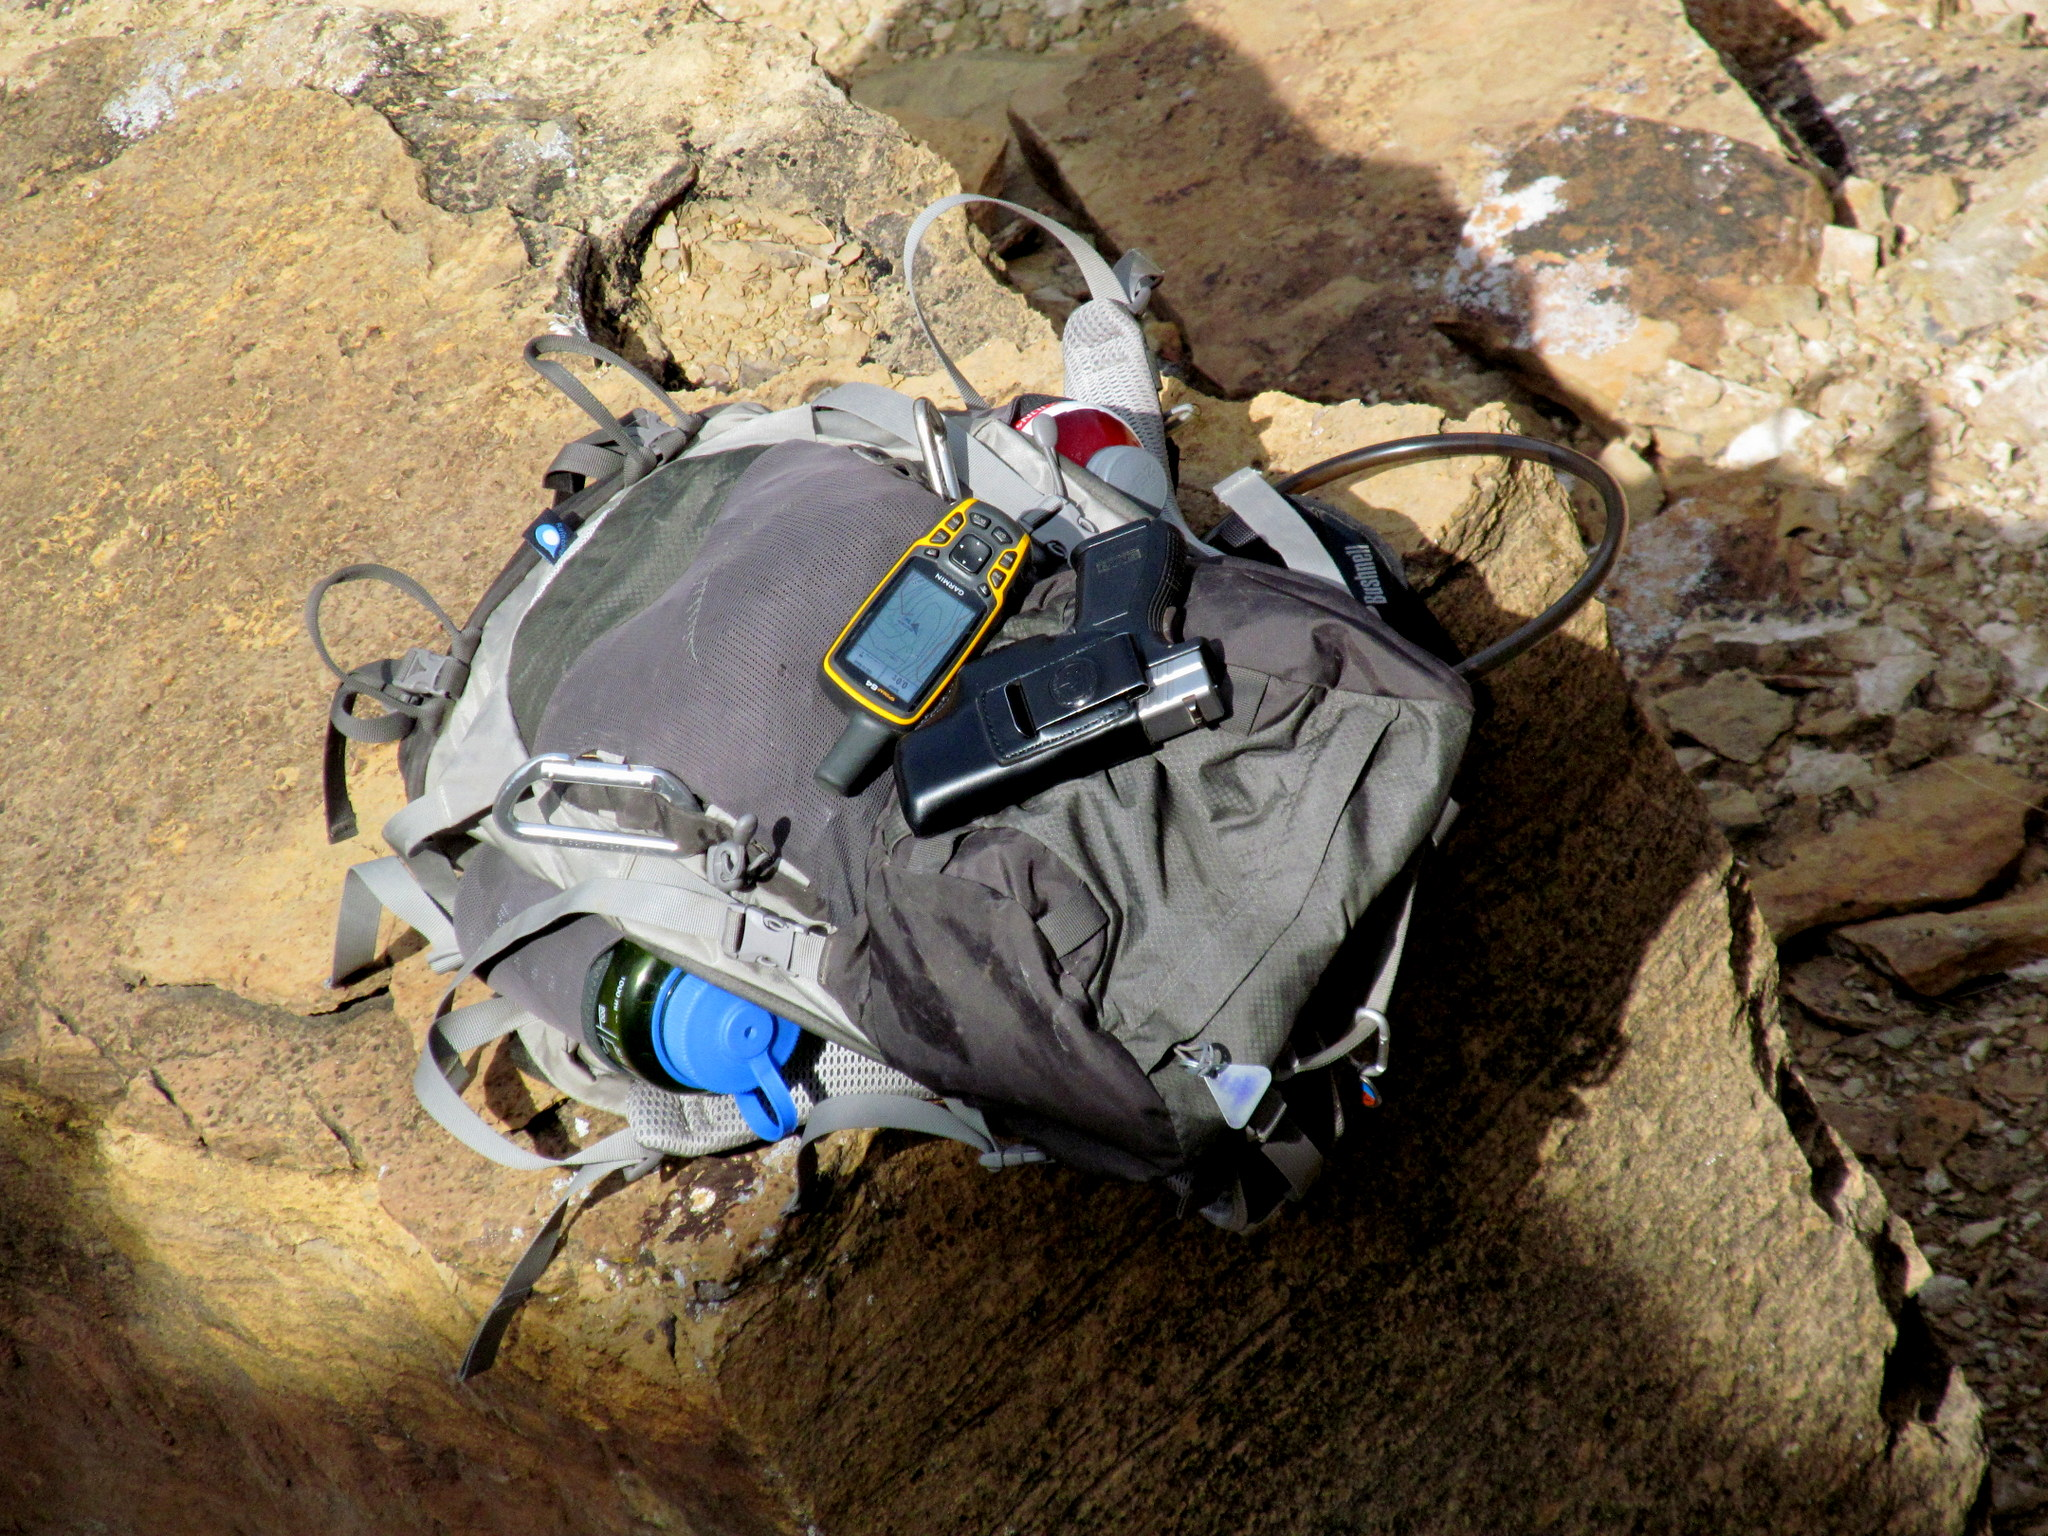 Photo: My gear below the butte